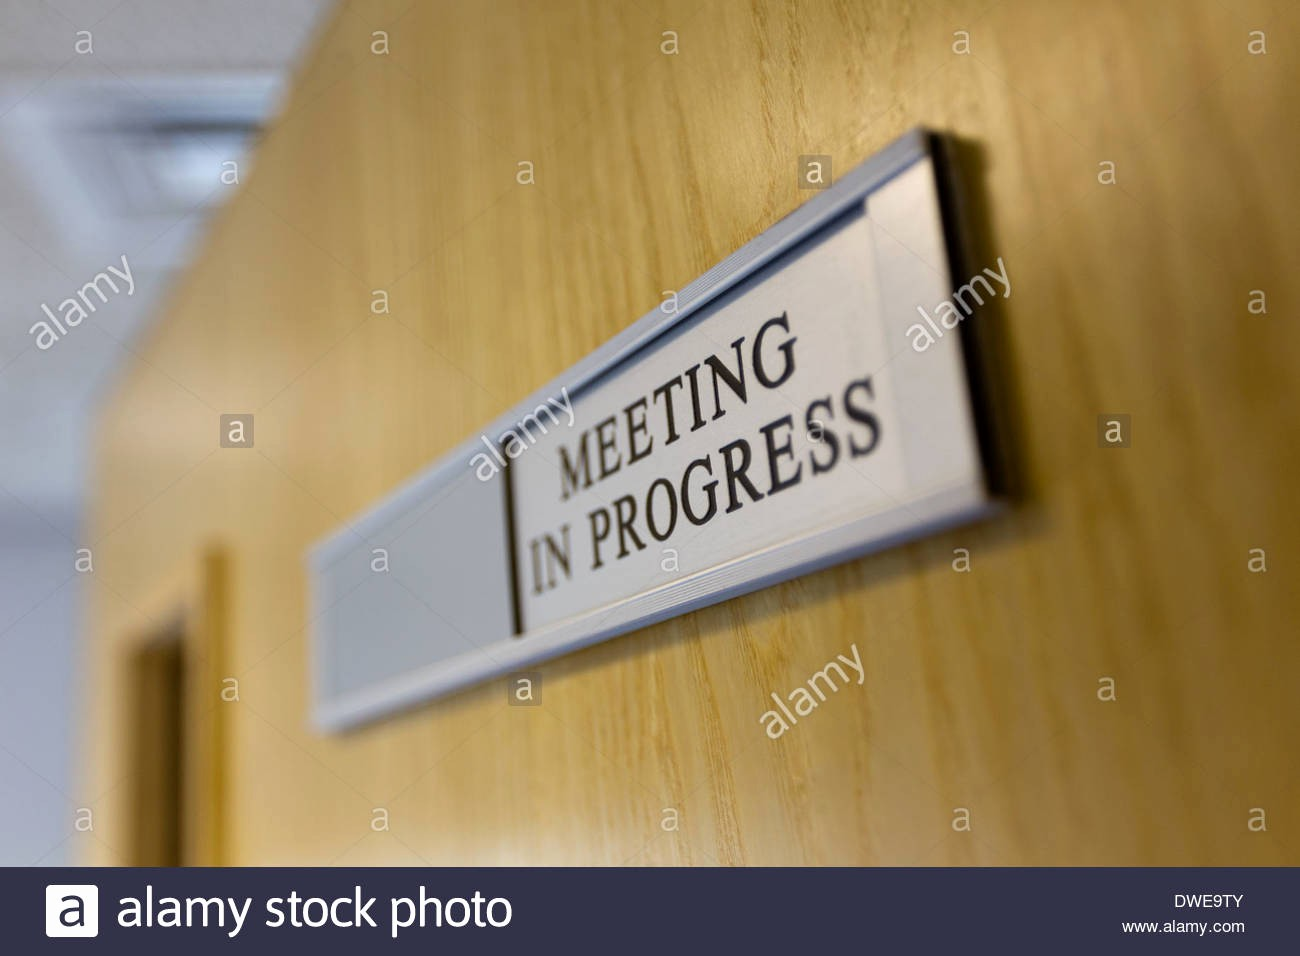 Meeting In Progress Door Signs Inspirational Meeting In Progress Sign On Door Stock Royalty Free